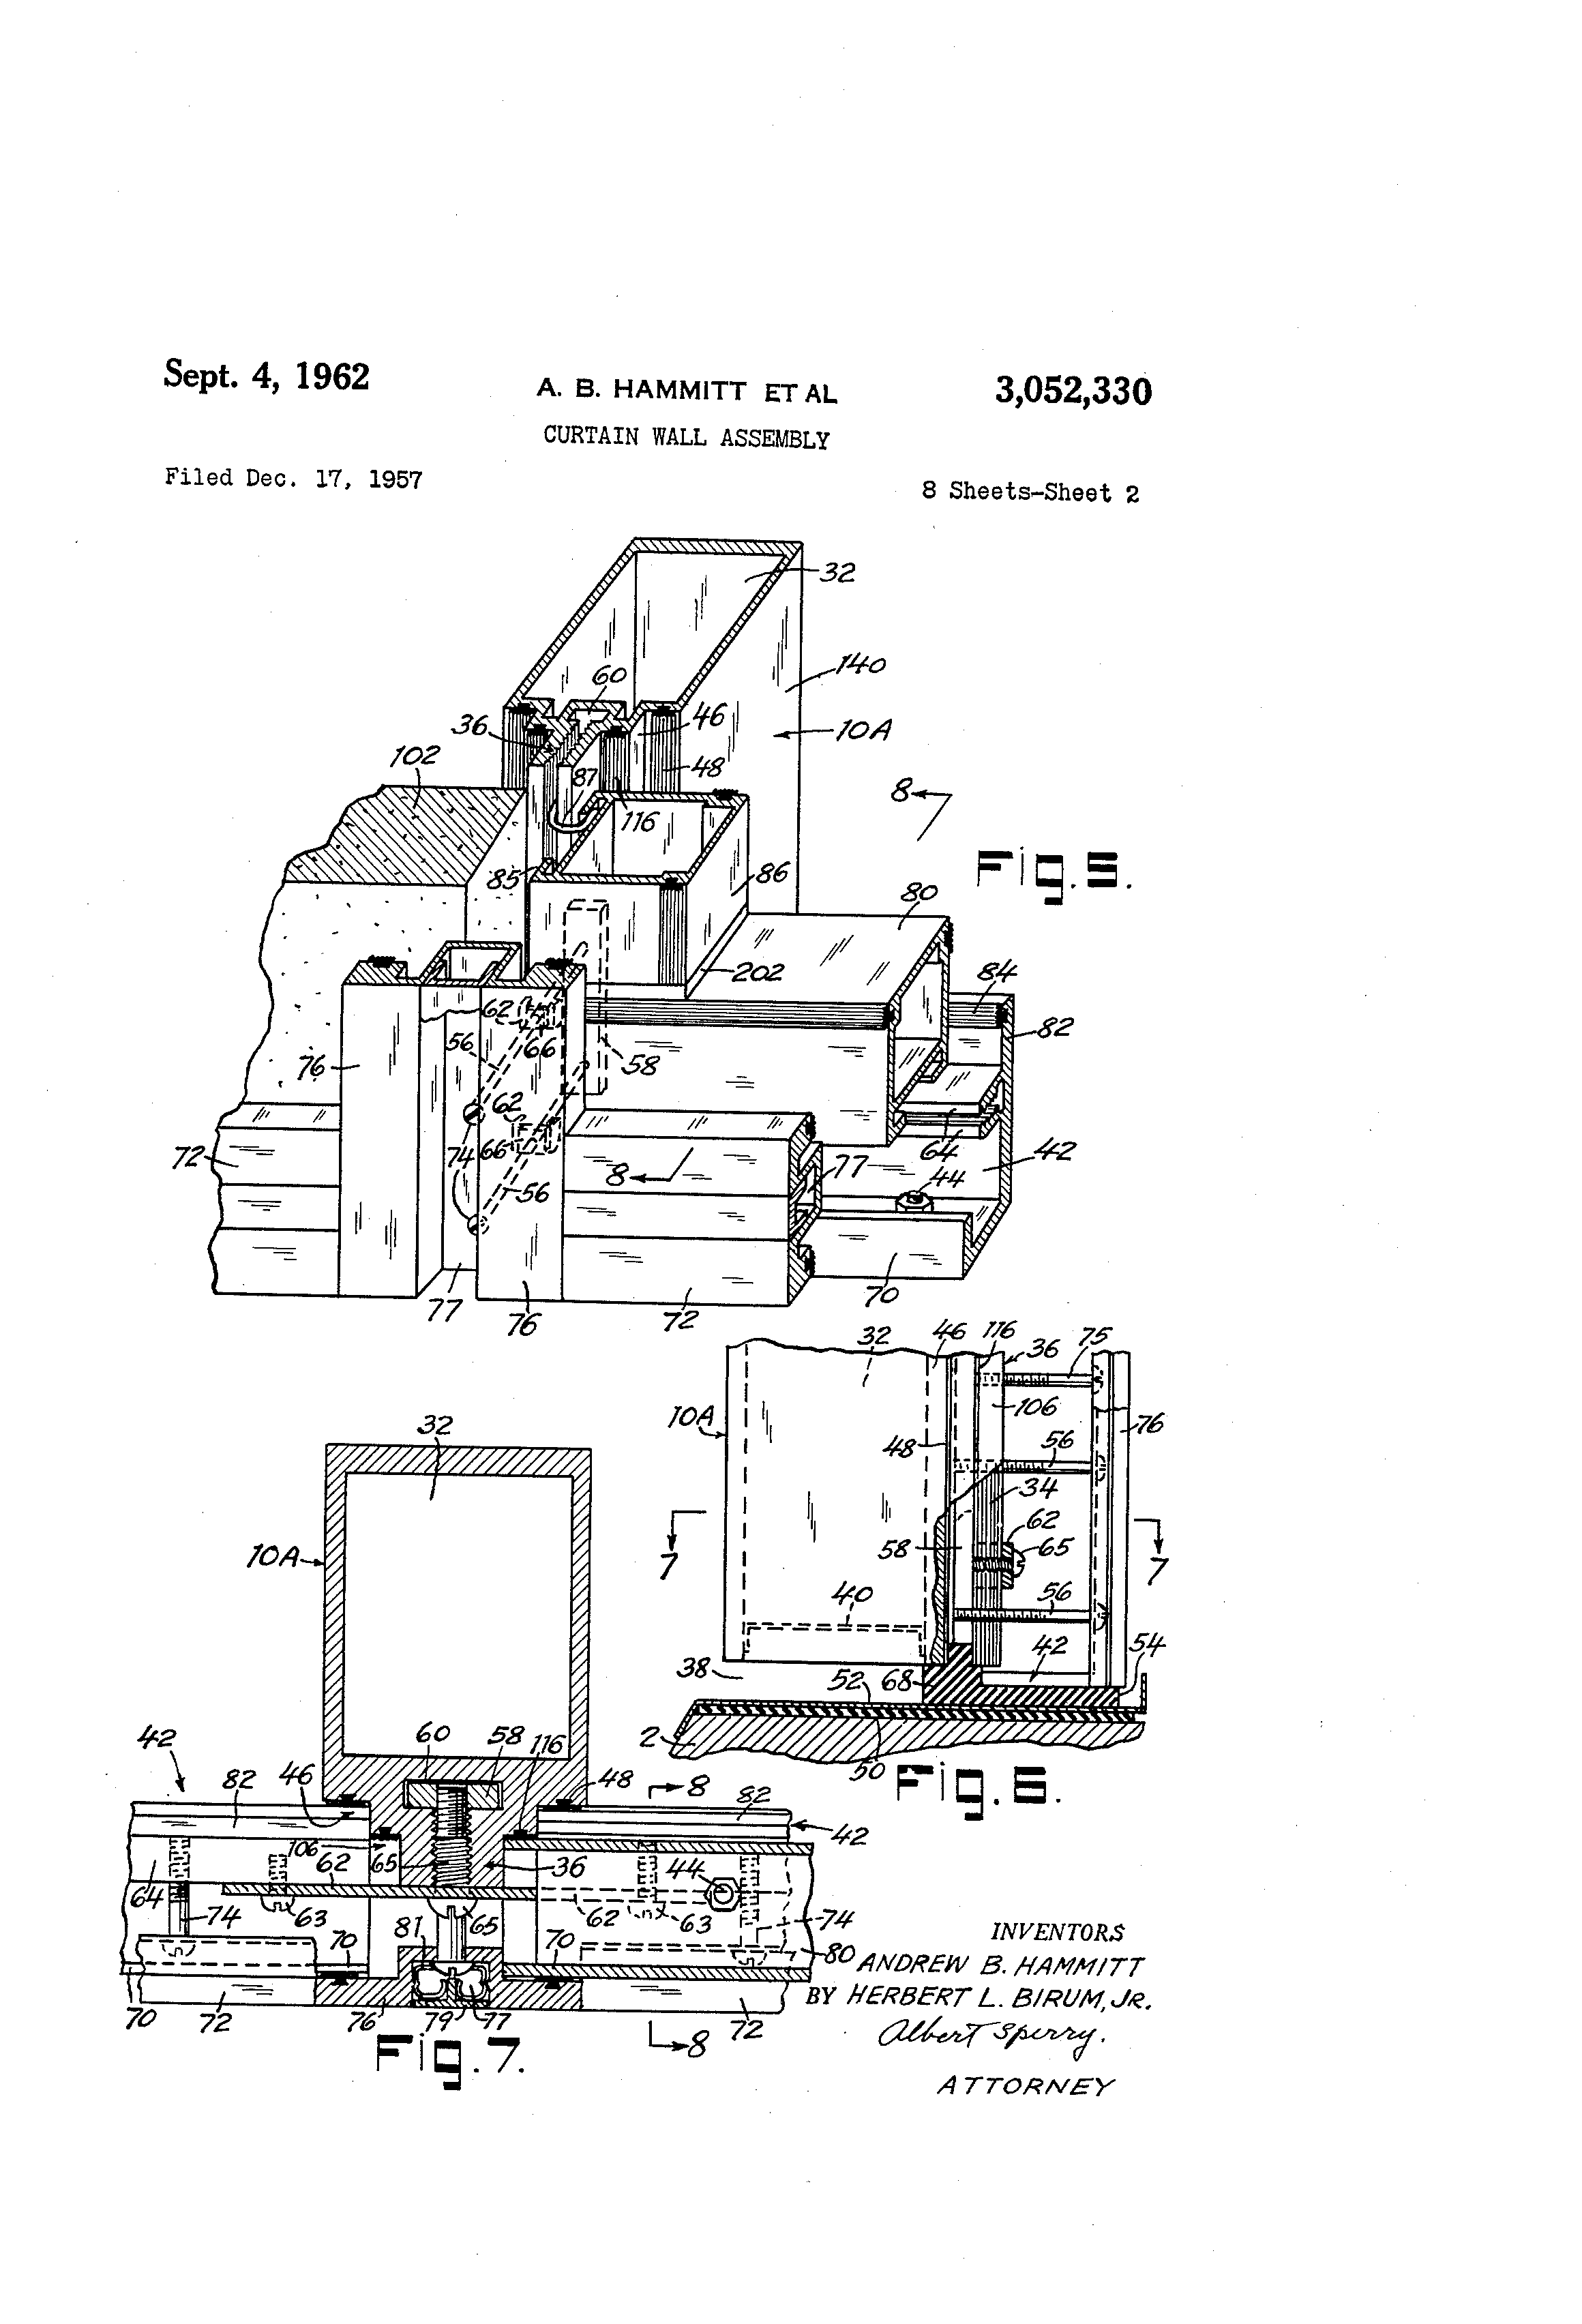 Cupples Curtain Wall : Patent us curtain wall assembly google patents